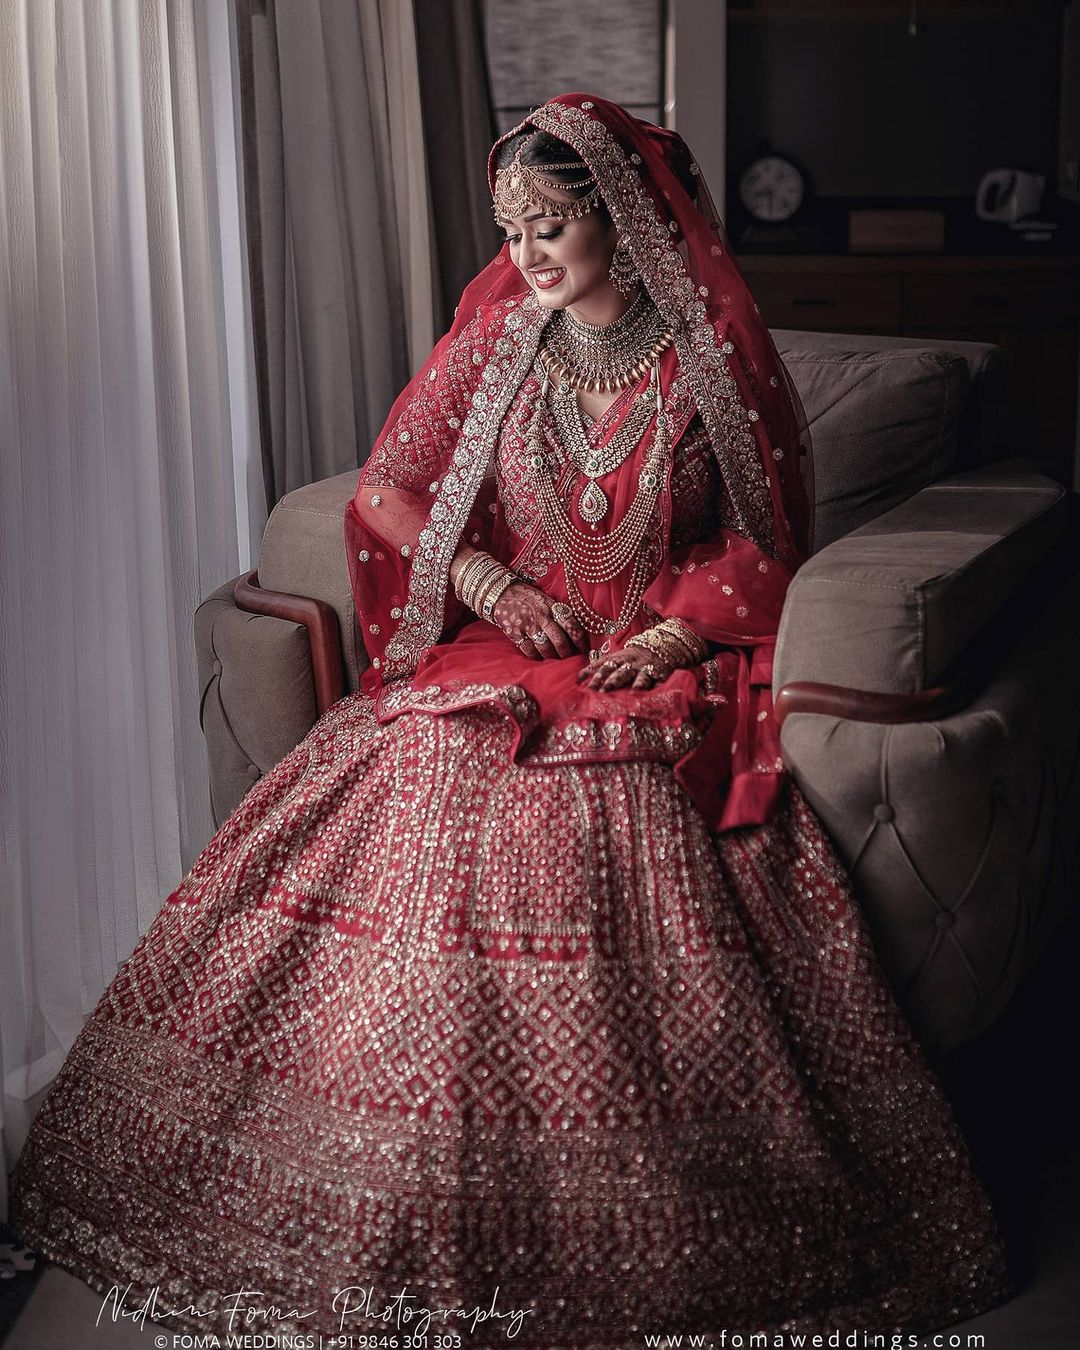 15 wedding photography royal shy bride by nidhin foma